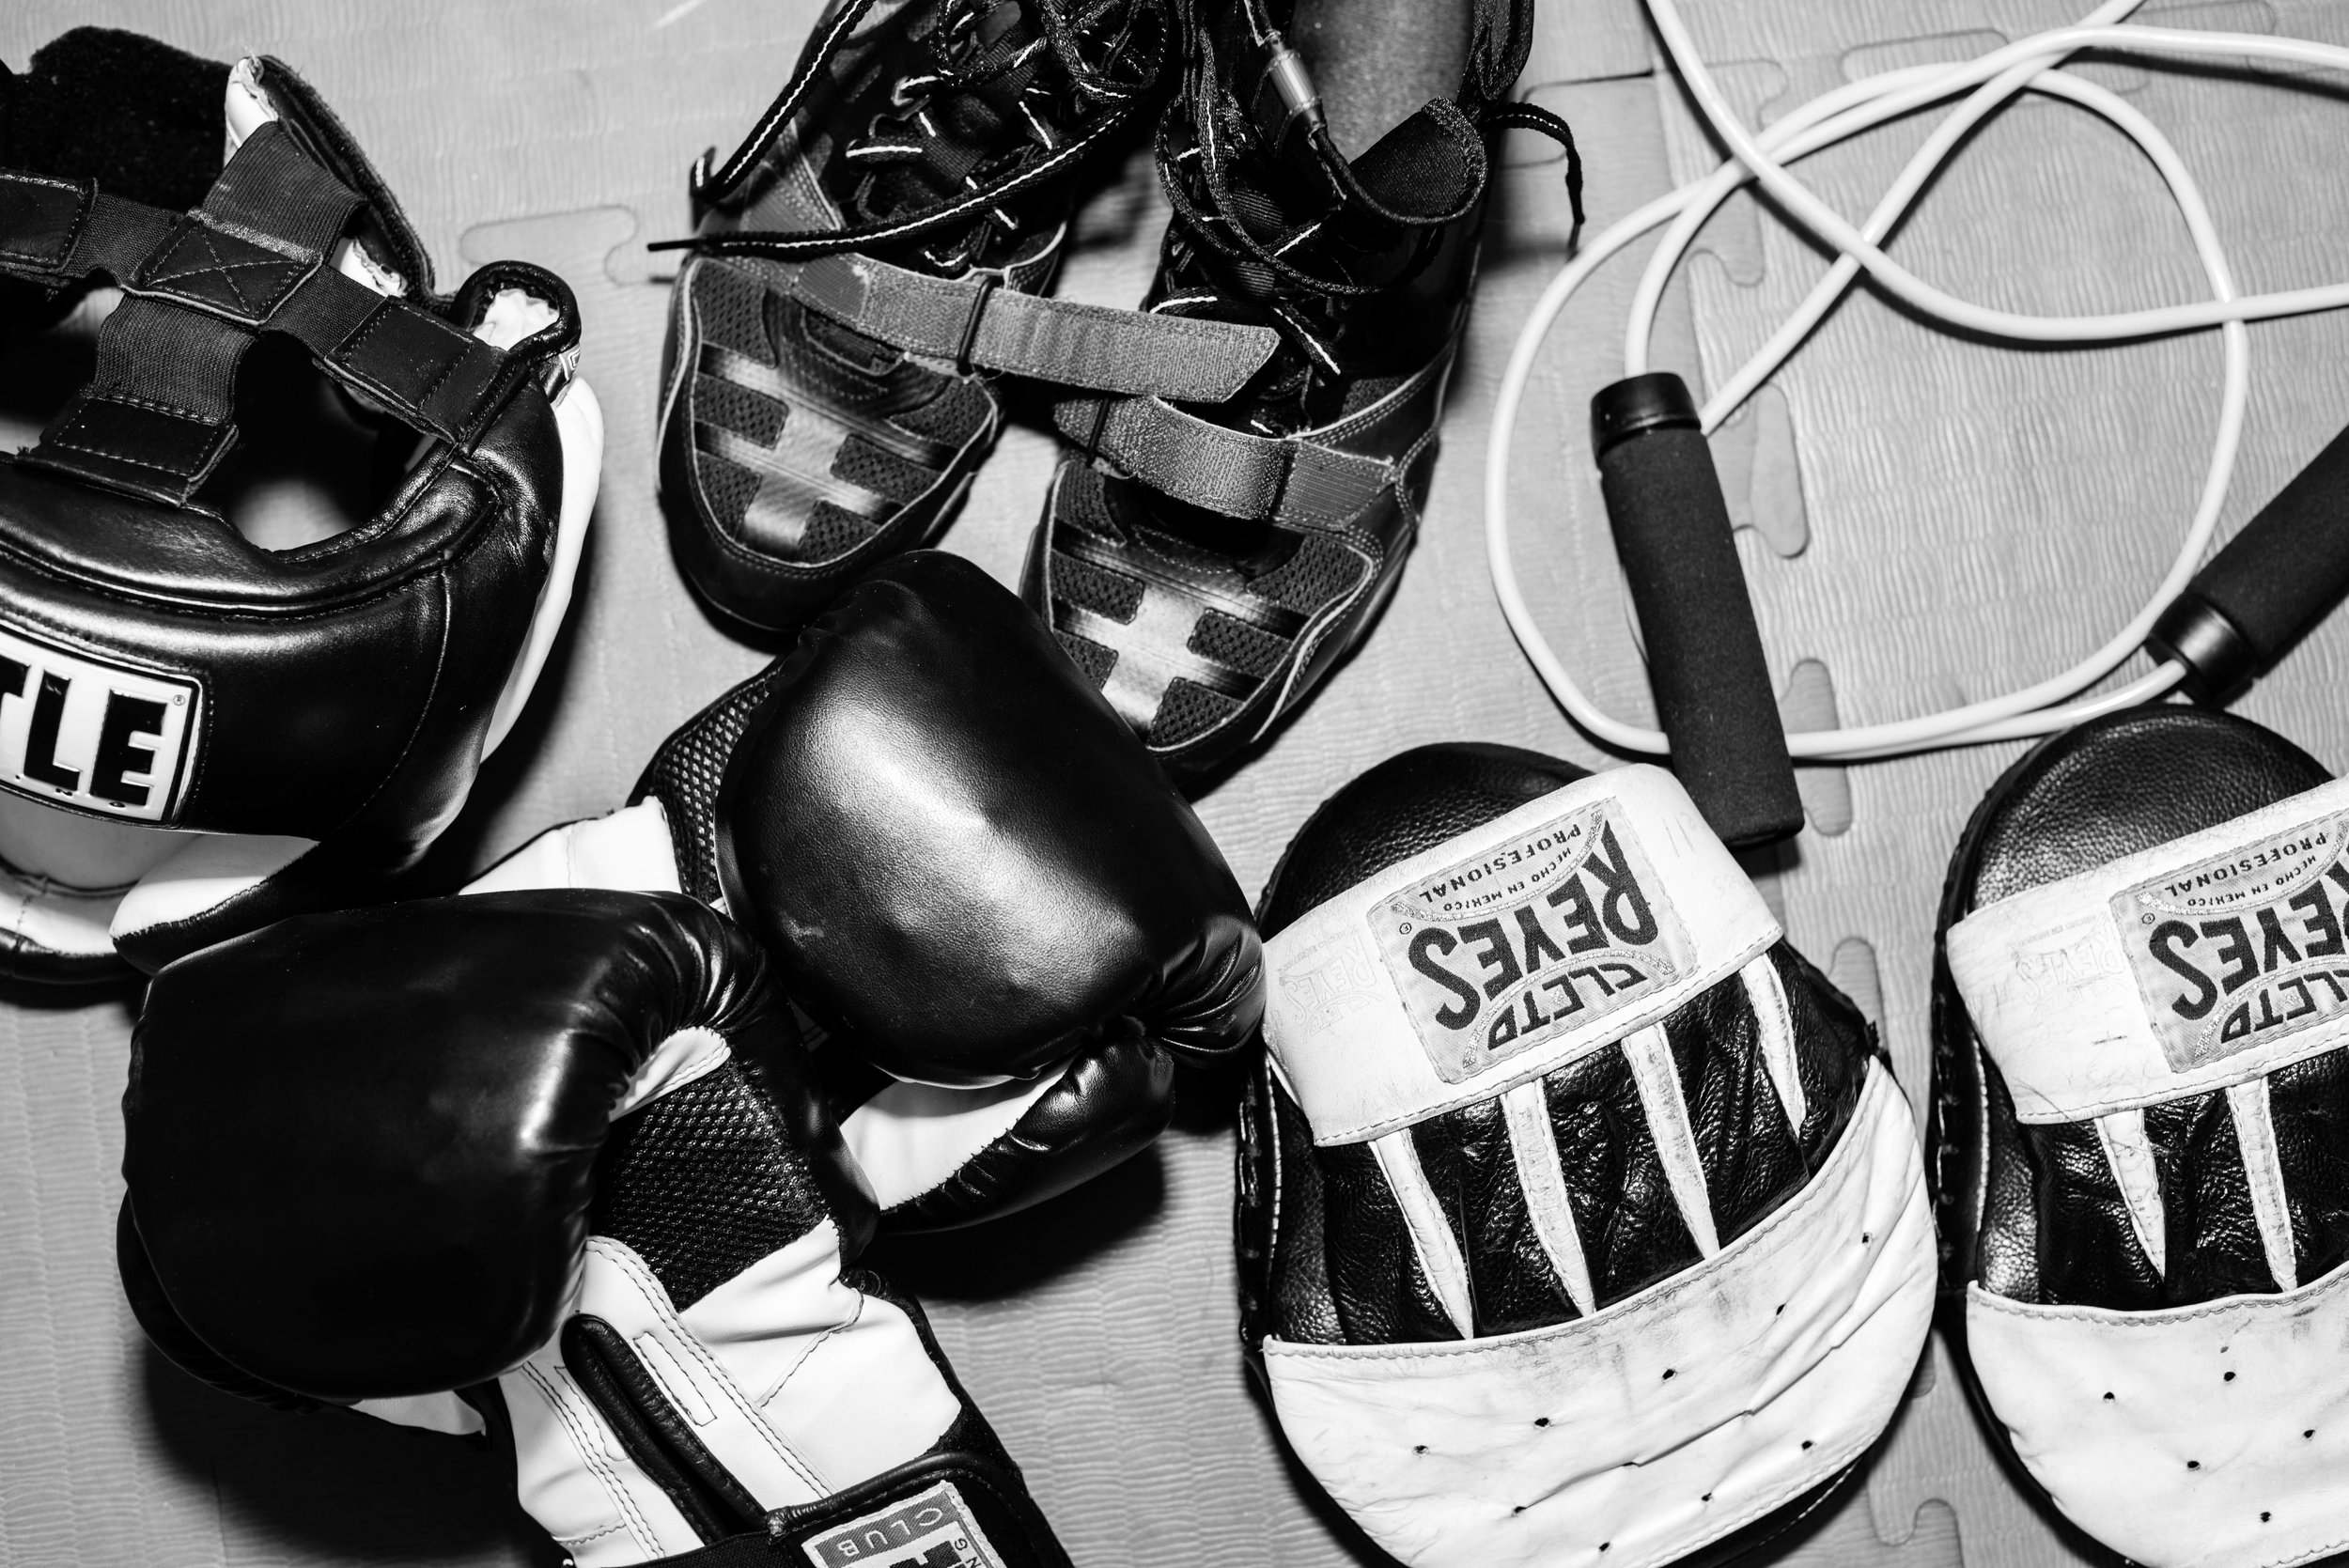 Boxing Gear at Grealish Boxing Club, Boston